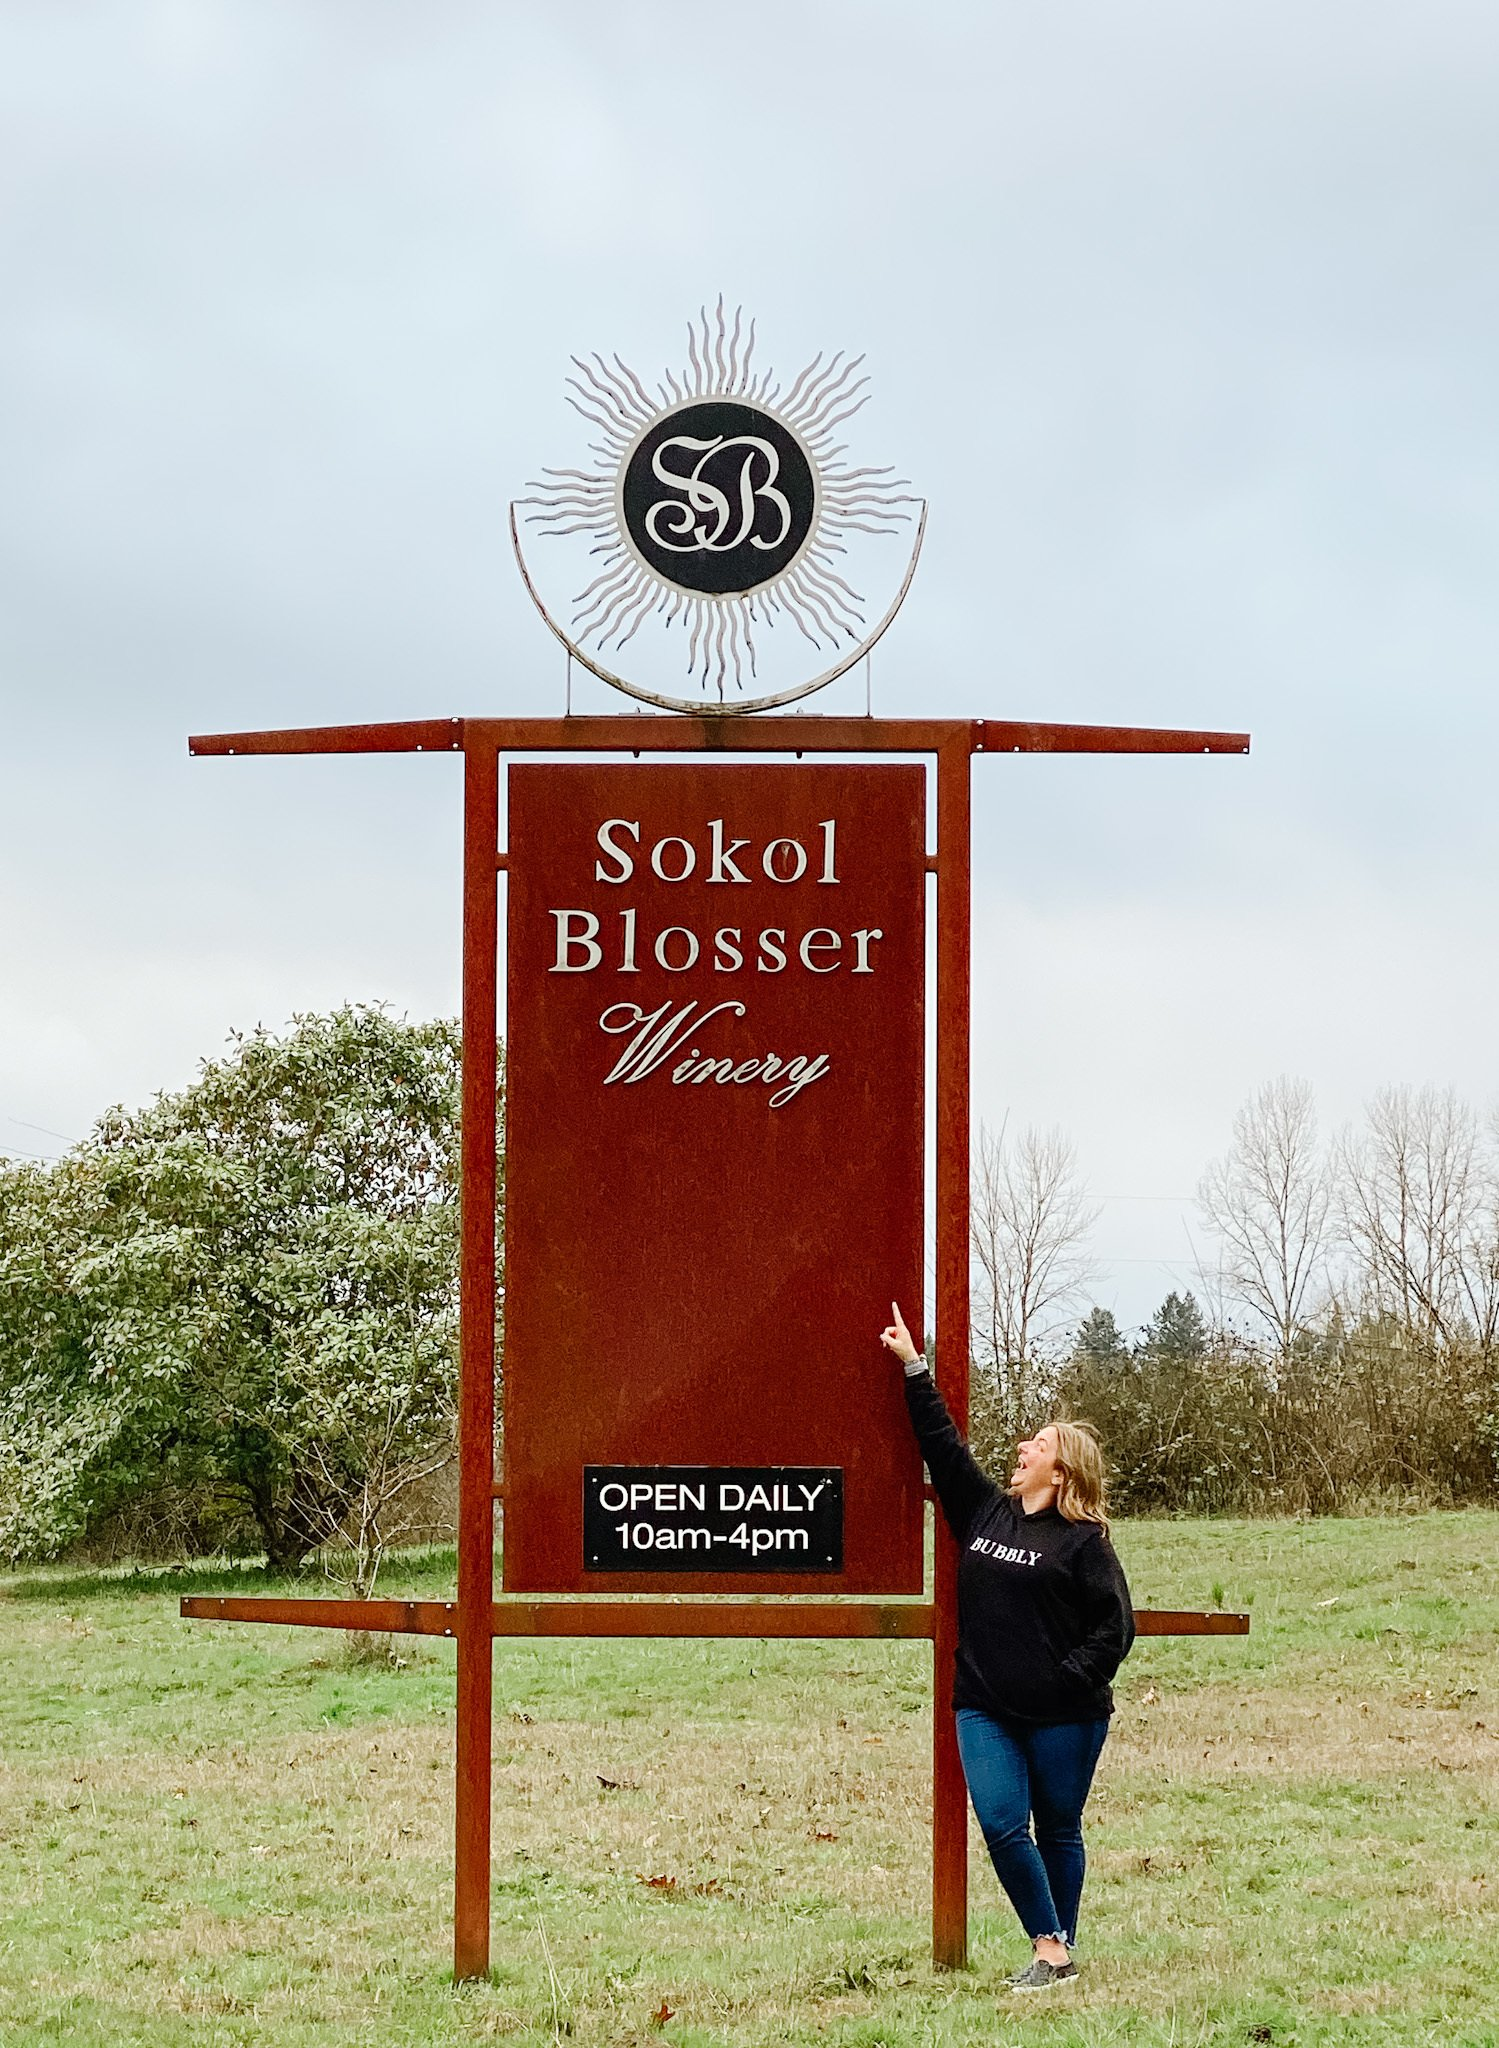 Sokol Blosser Winery – 1 of Oregon's Best